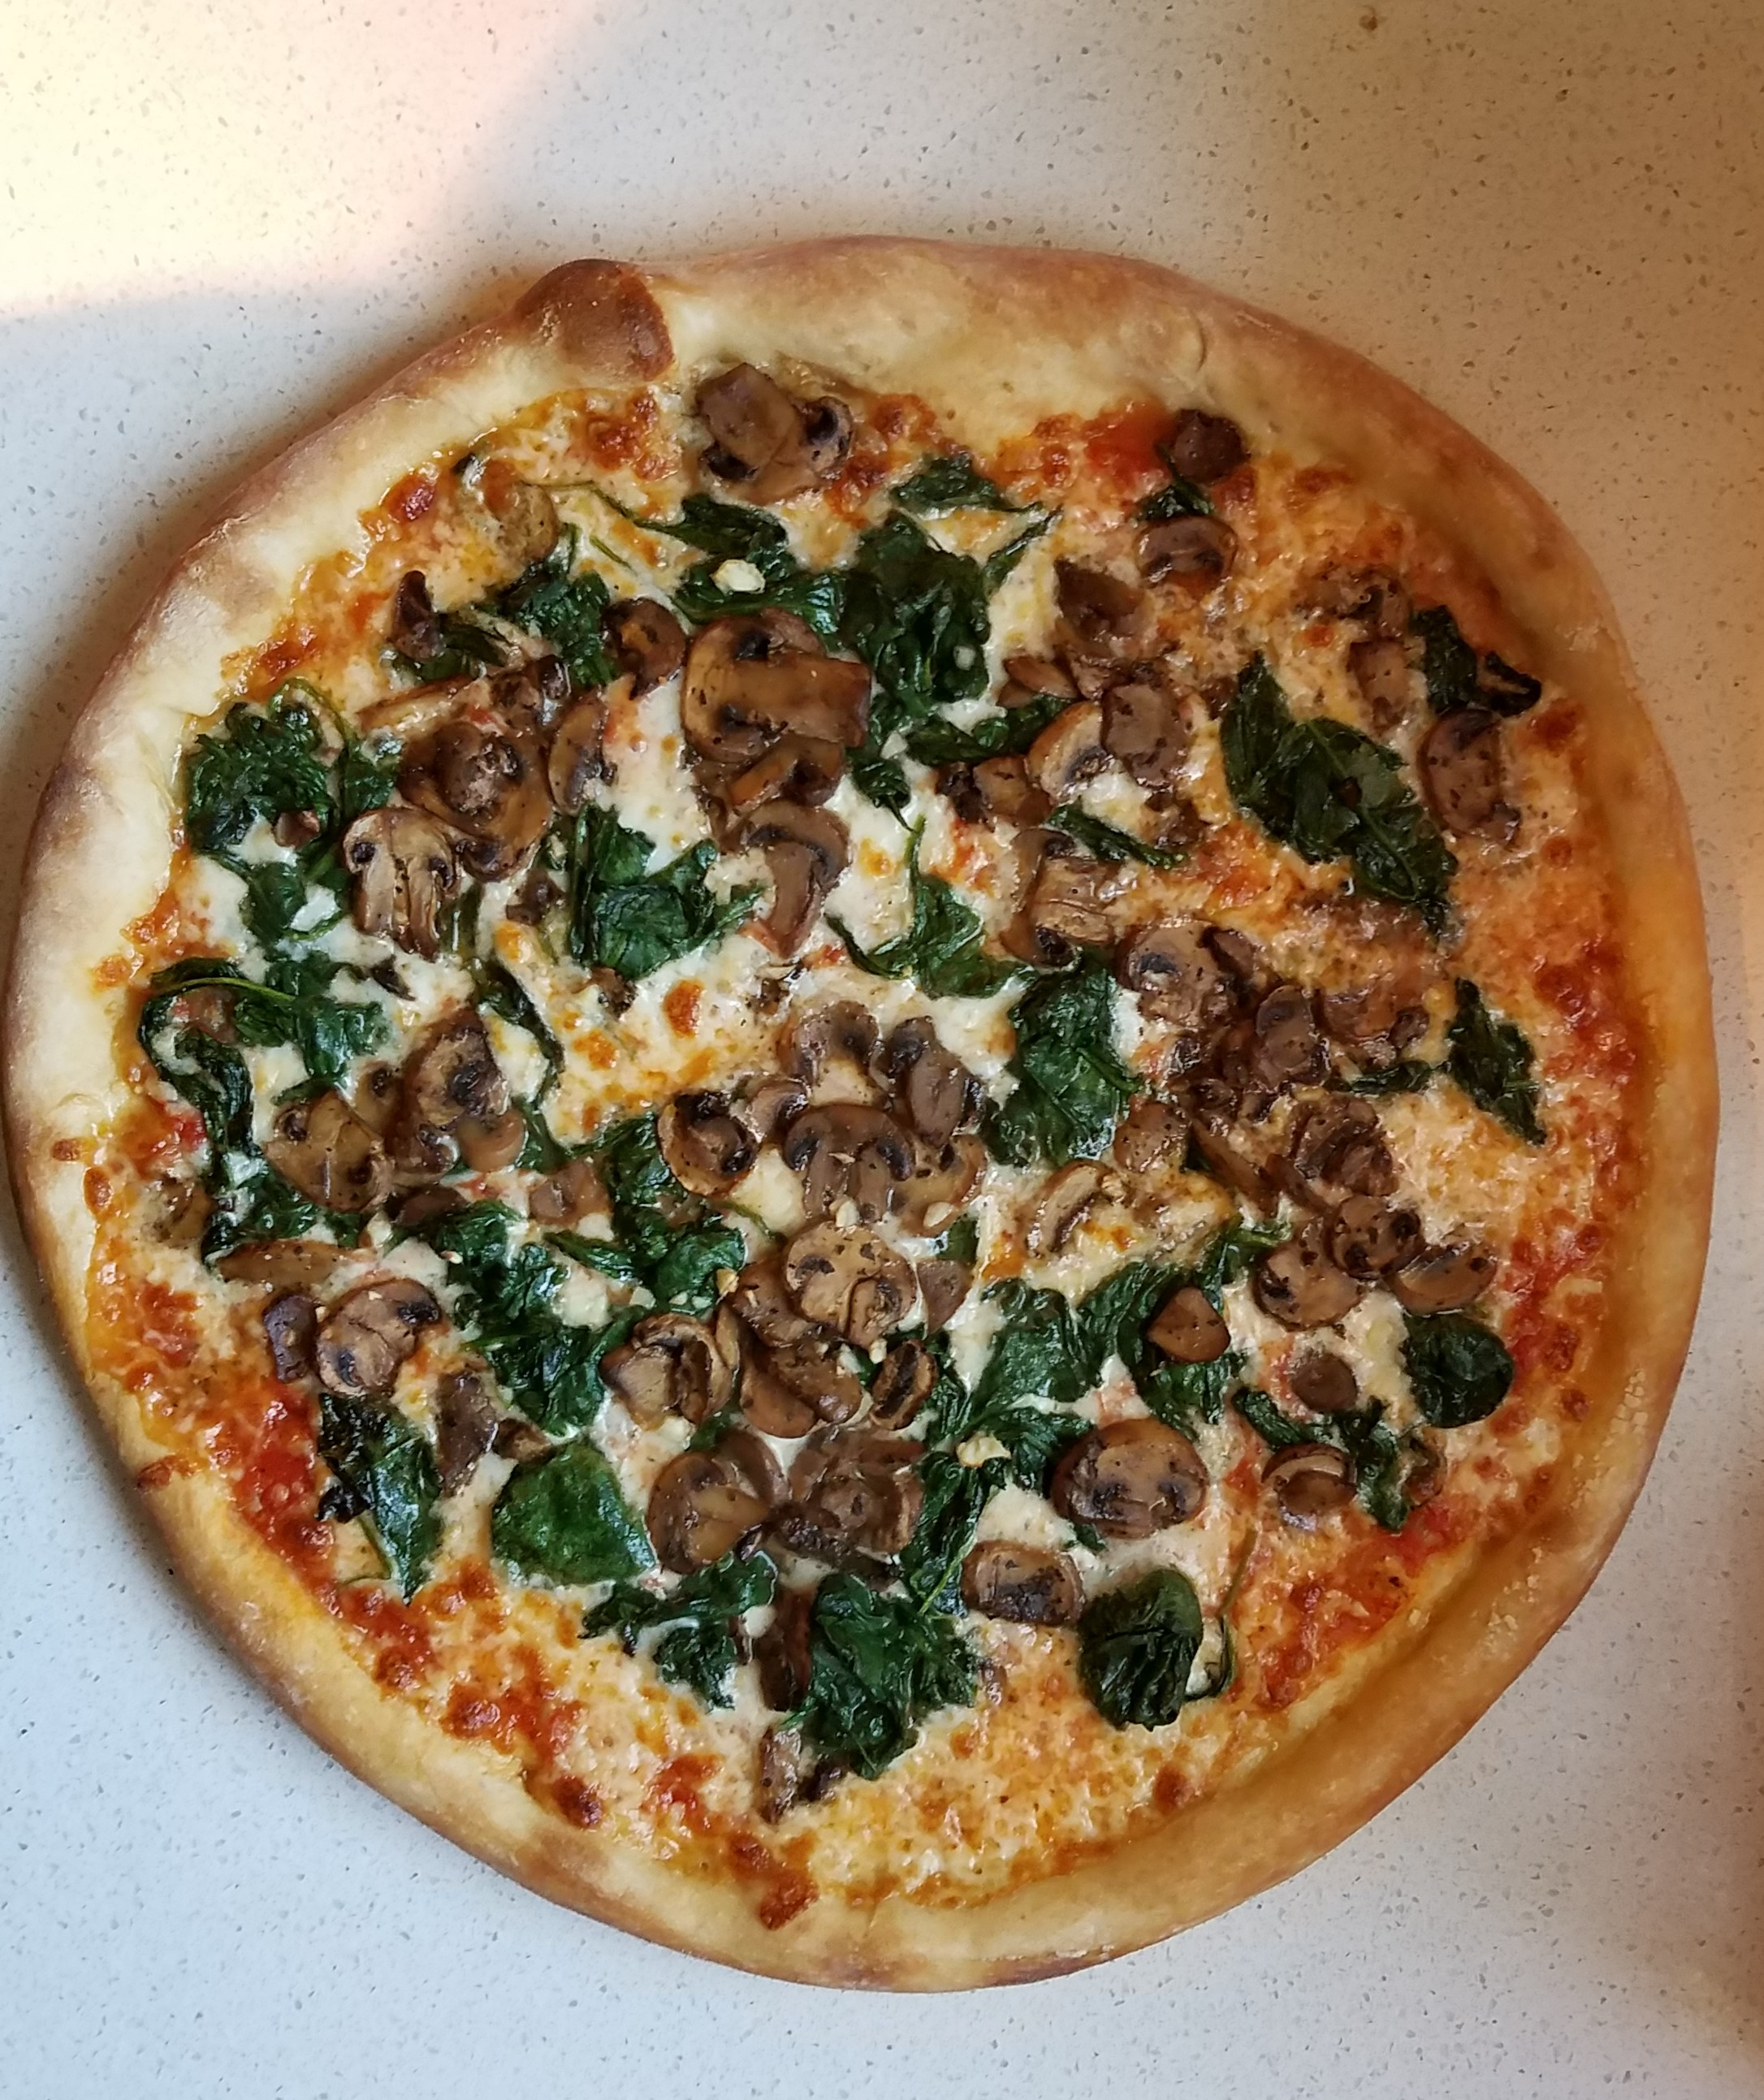 Spinach and mushroom pizza from Junior's